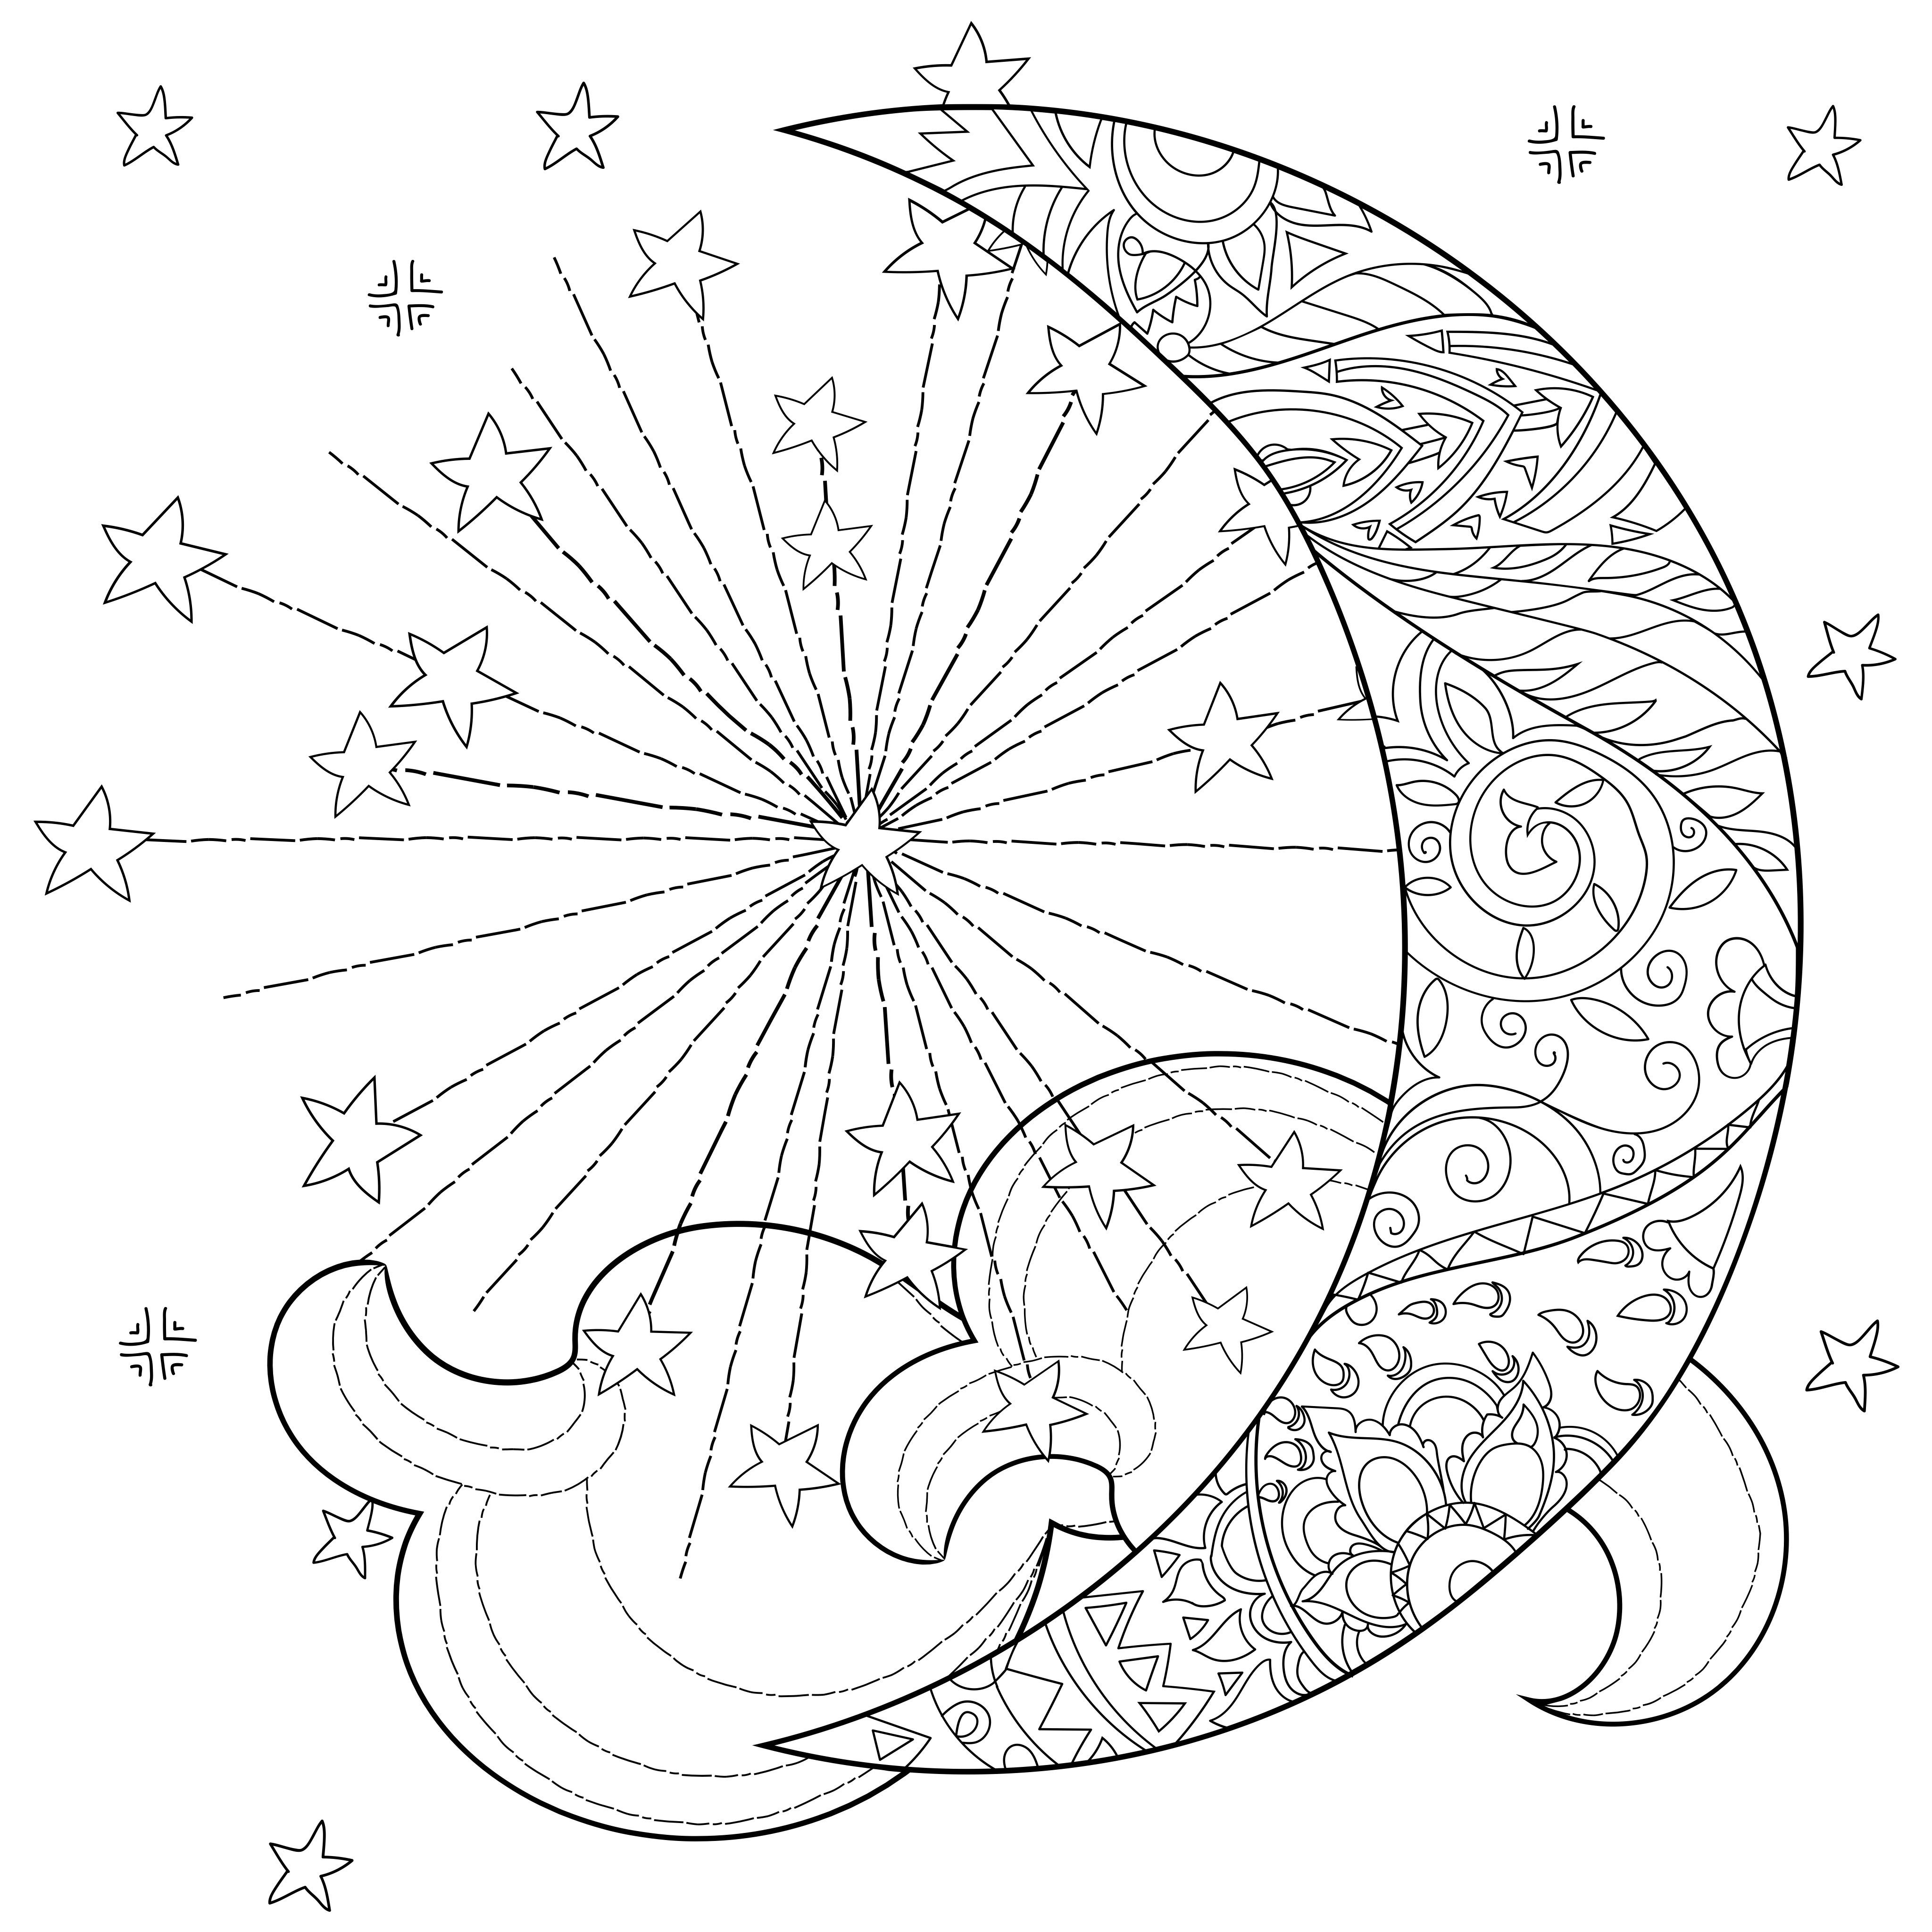 Celestial Sun Moon Coloring Page Star Coloring Pages Mandala Coloring Pages Moon Coloring Pages